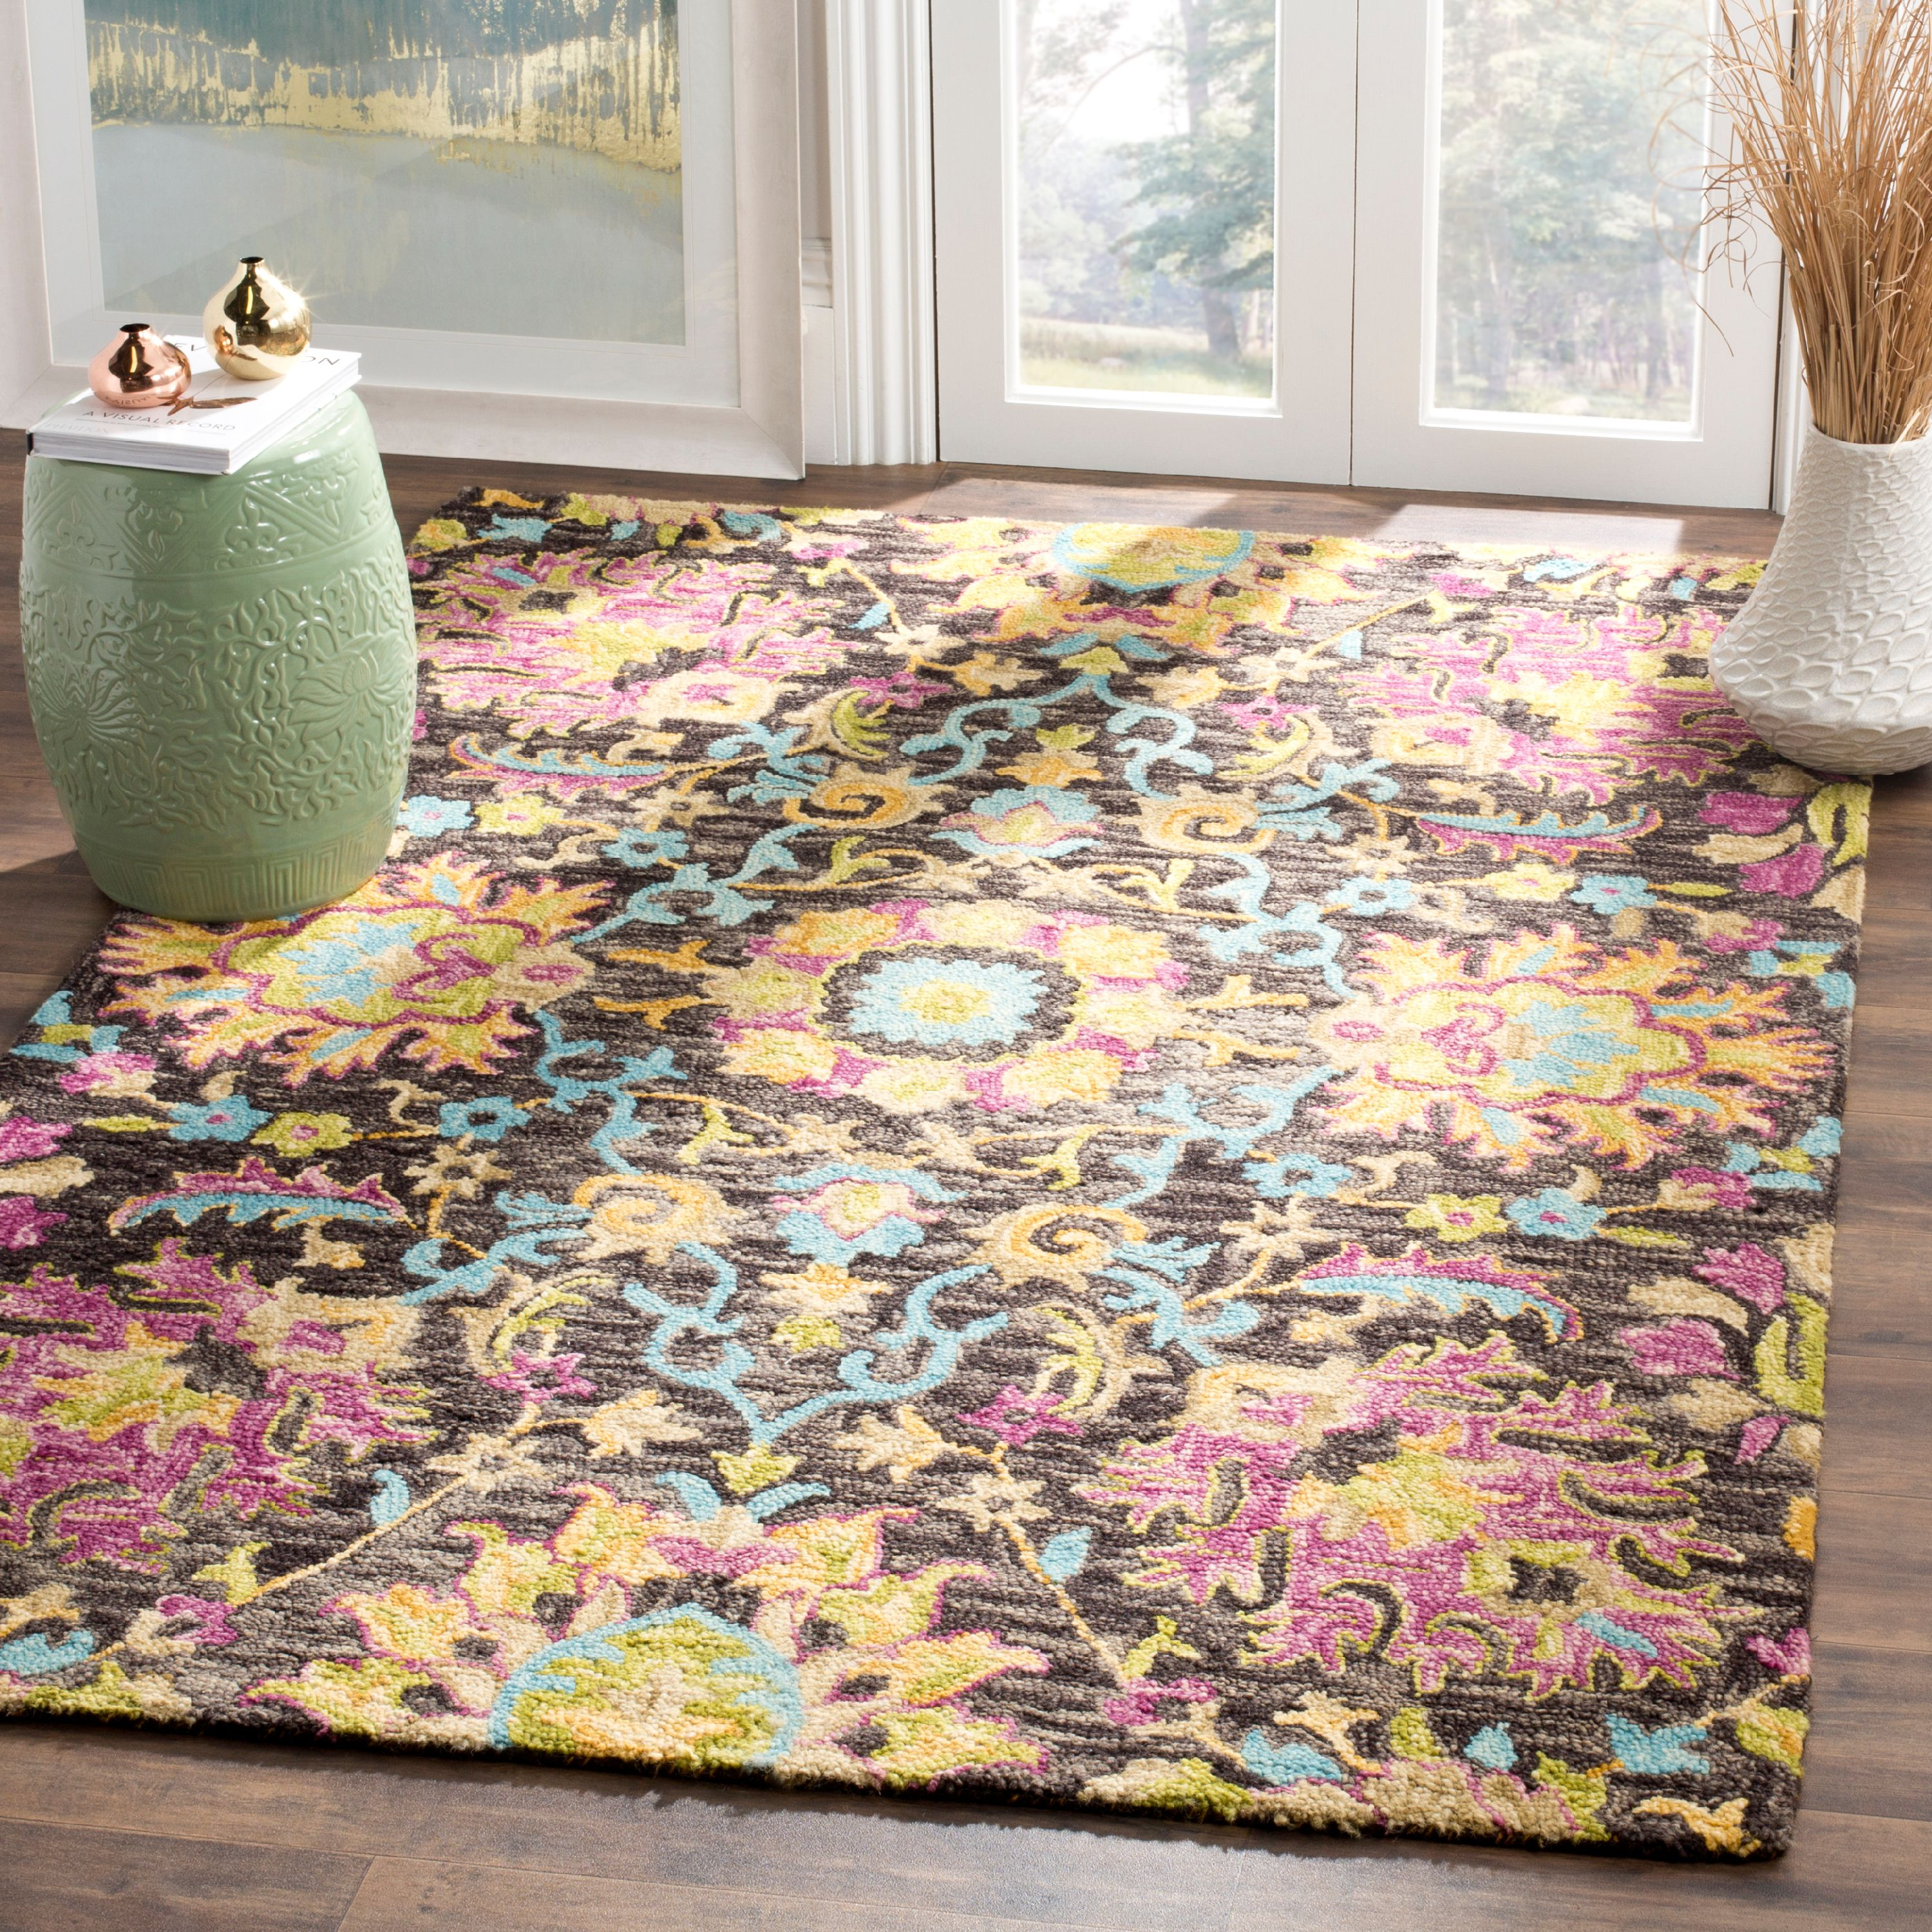 Safavieh Blossom Gavril Floral Area Rug or Runner by Safavieh